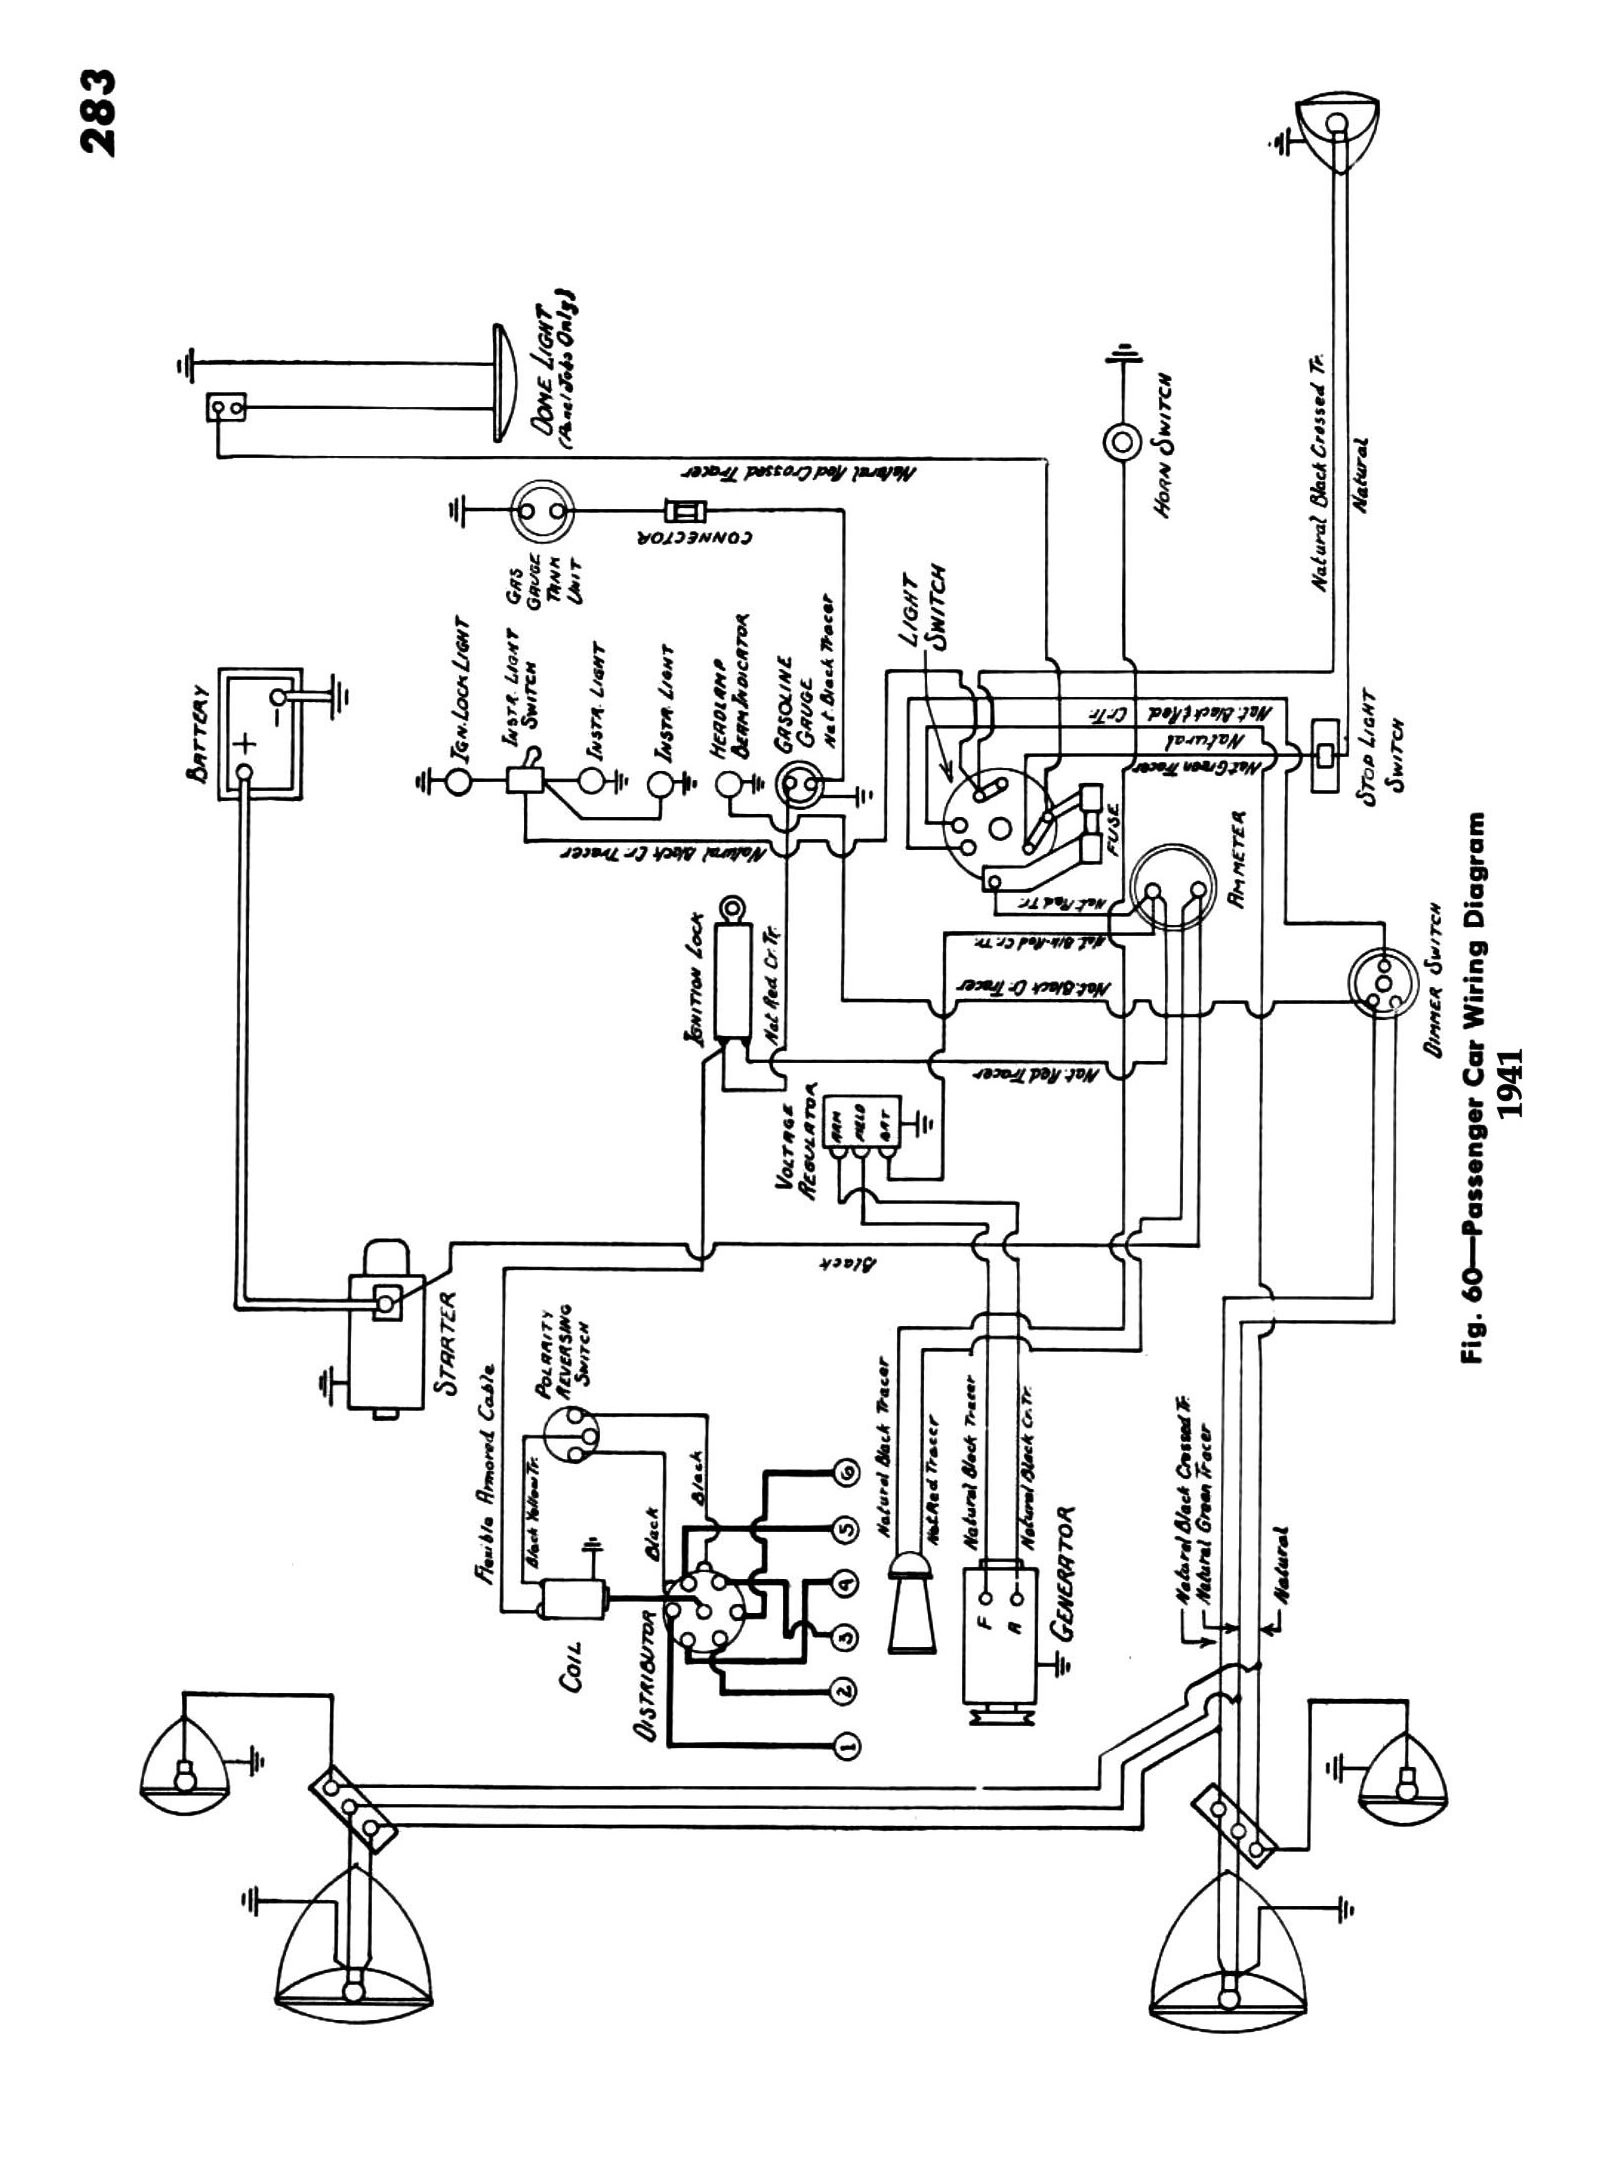 Magnificent international 9200 truck wiring diagrams photos wiring